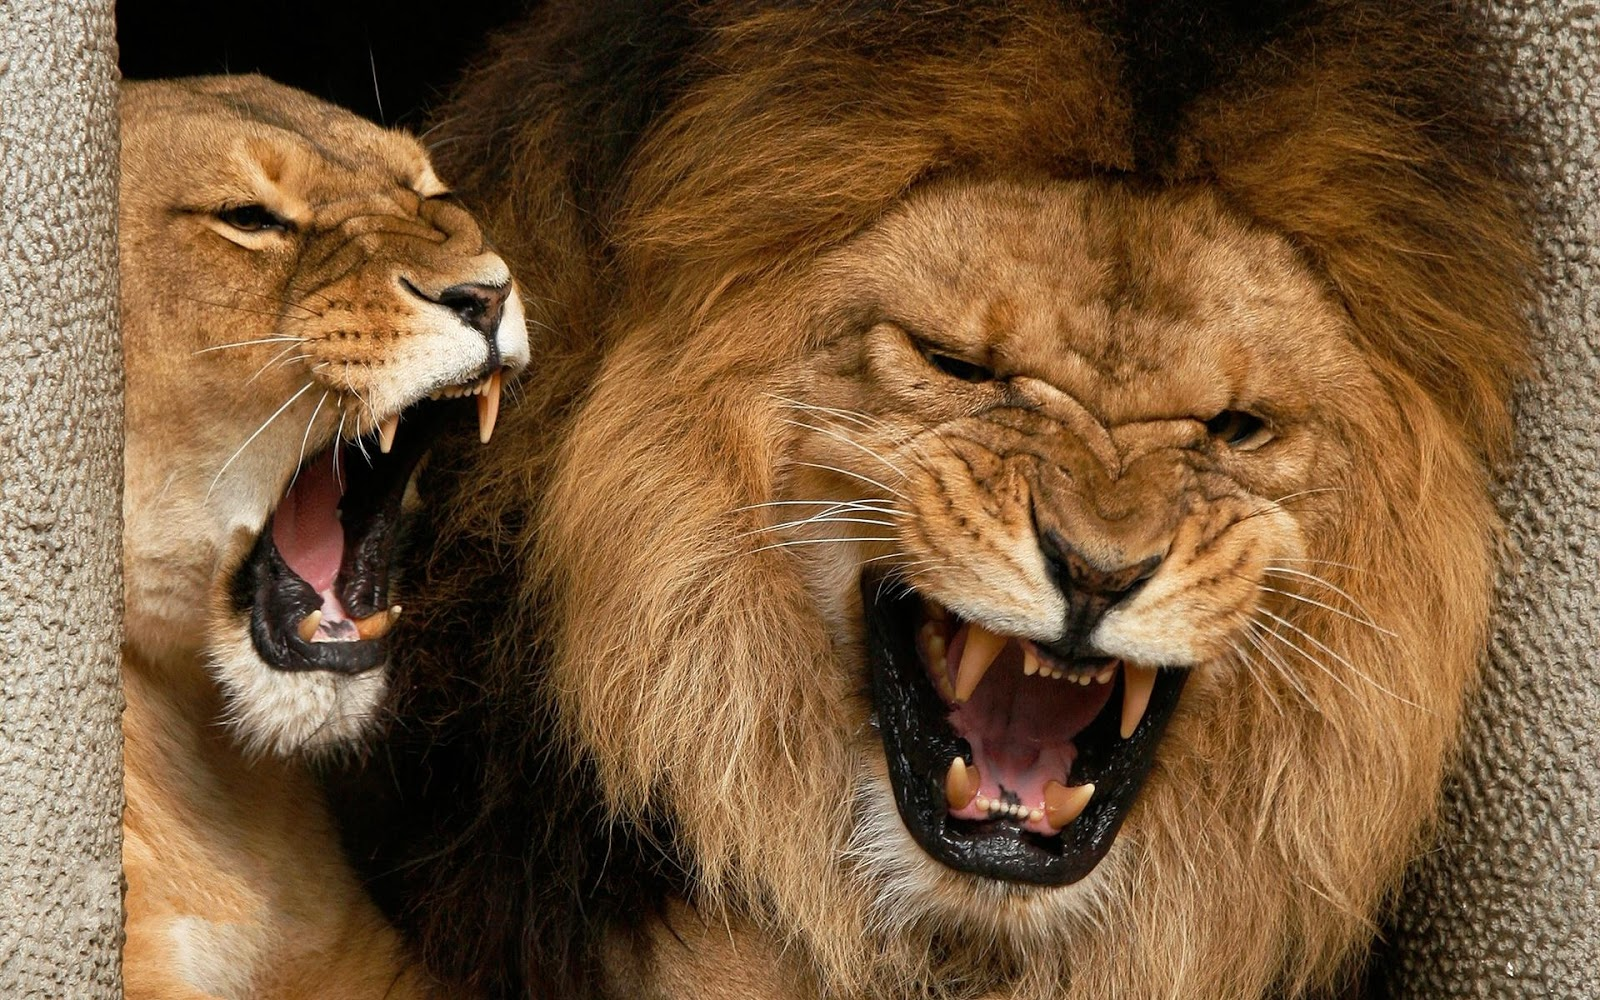 lion with scary faces picture beautiful cute lion wallpaper tigers 1600x1000